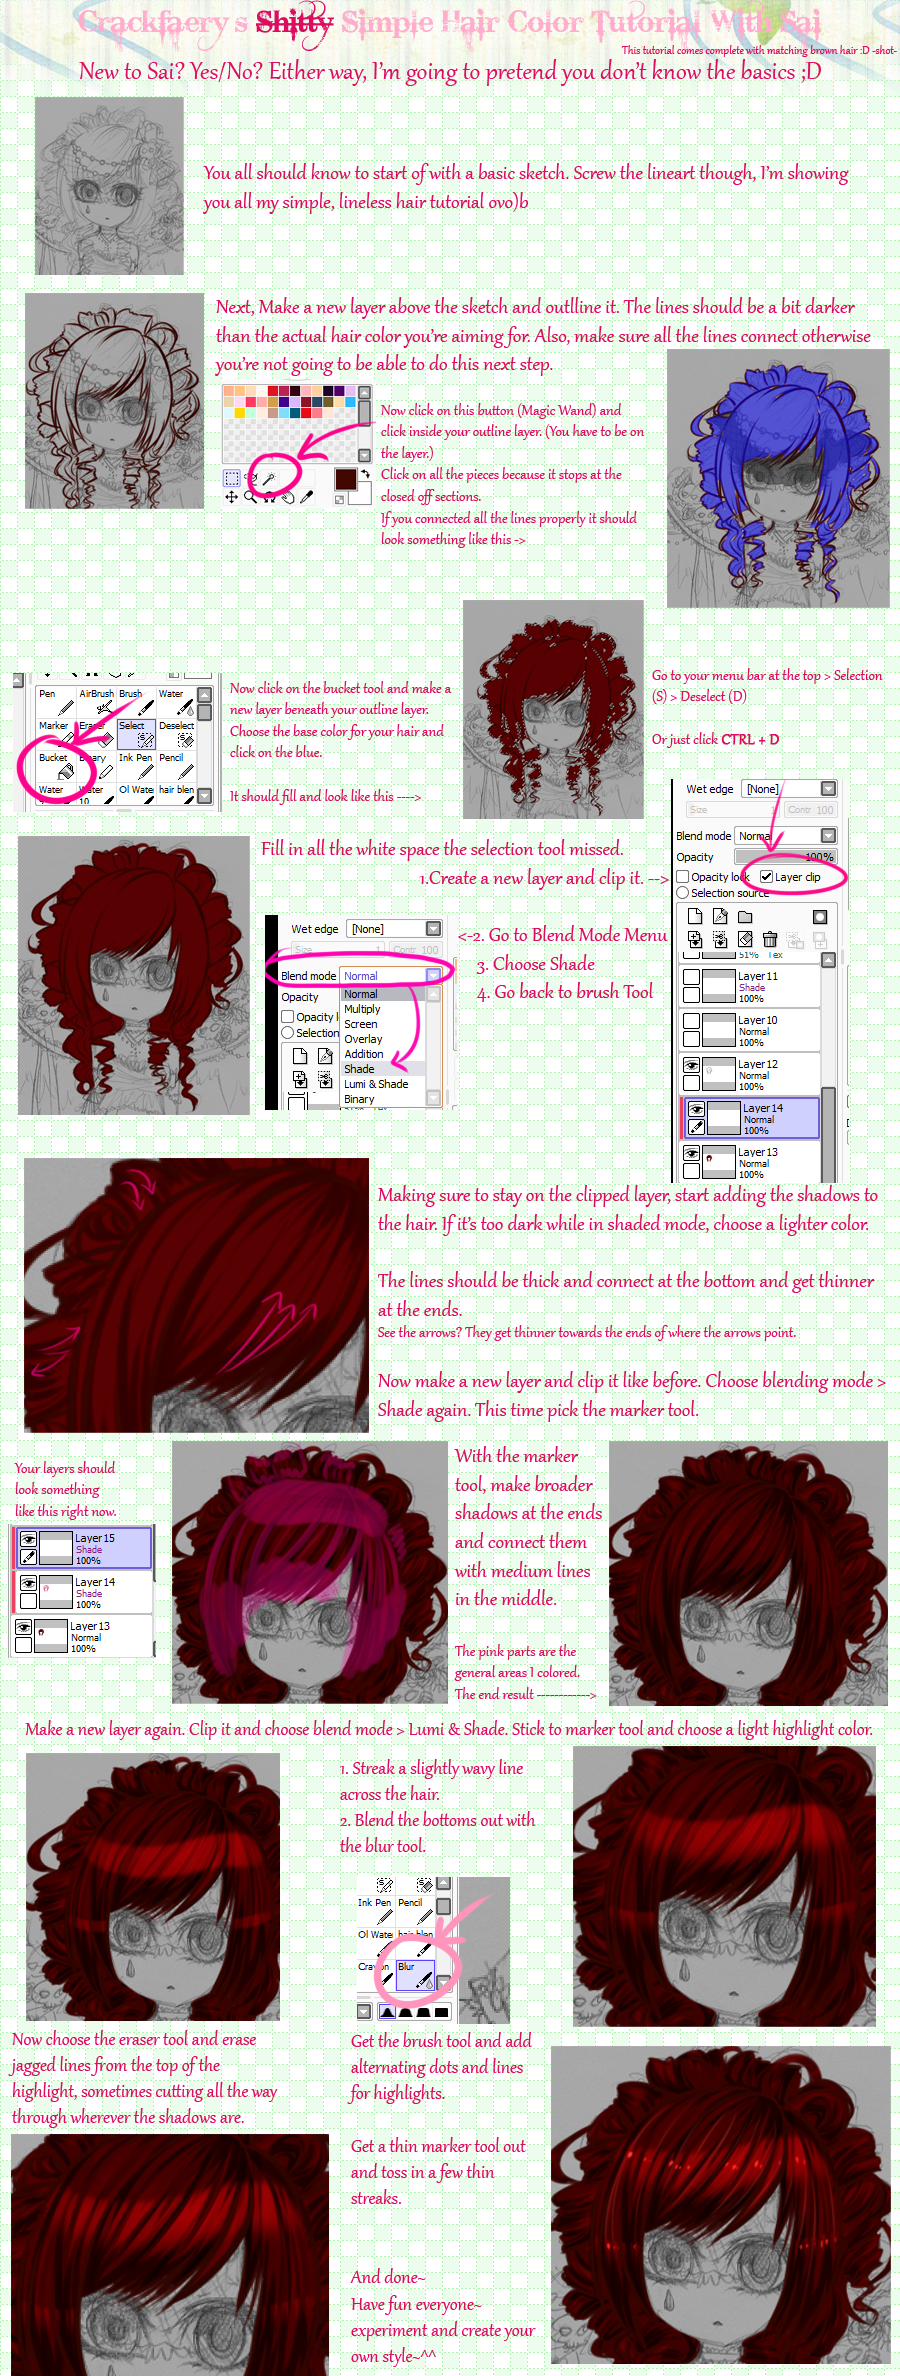 Crackfaery's Simple Hair Coloring Tutorial + Sai by CrackFaery